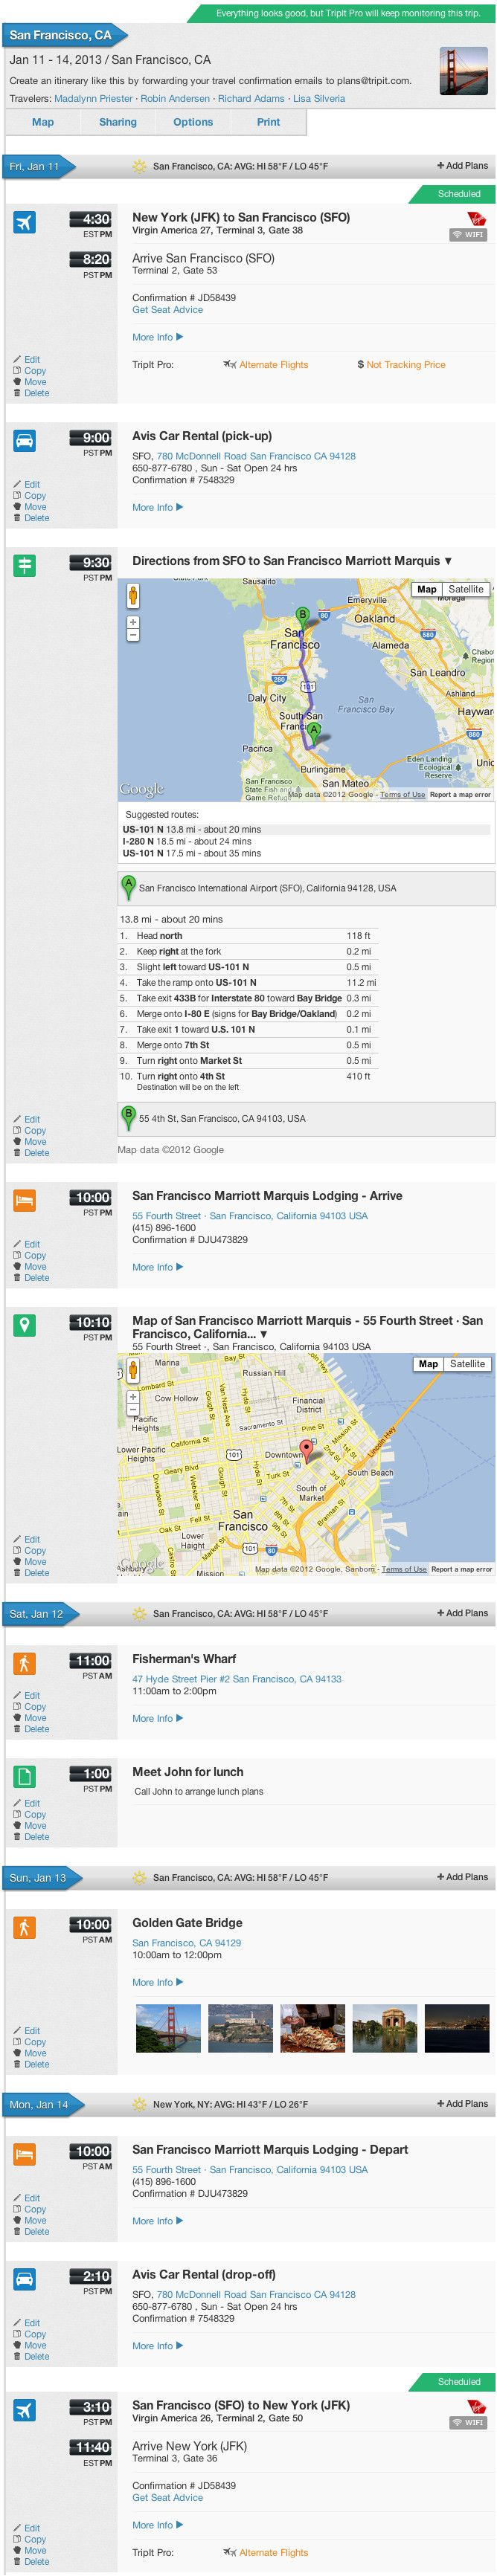 The mobile travel organizer creates one itinerary for all your plans, so you always have vital confirmation numbers and addresses at your fingertips. All you have to do is forward your confirmation emails to plans@tripit.com, and voila, TripIt's itinerary will show your flight plans, hotel reservations, rental car bookings, and even activities like boat tours, online restaurant reservations and event tickets all in one place.